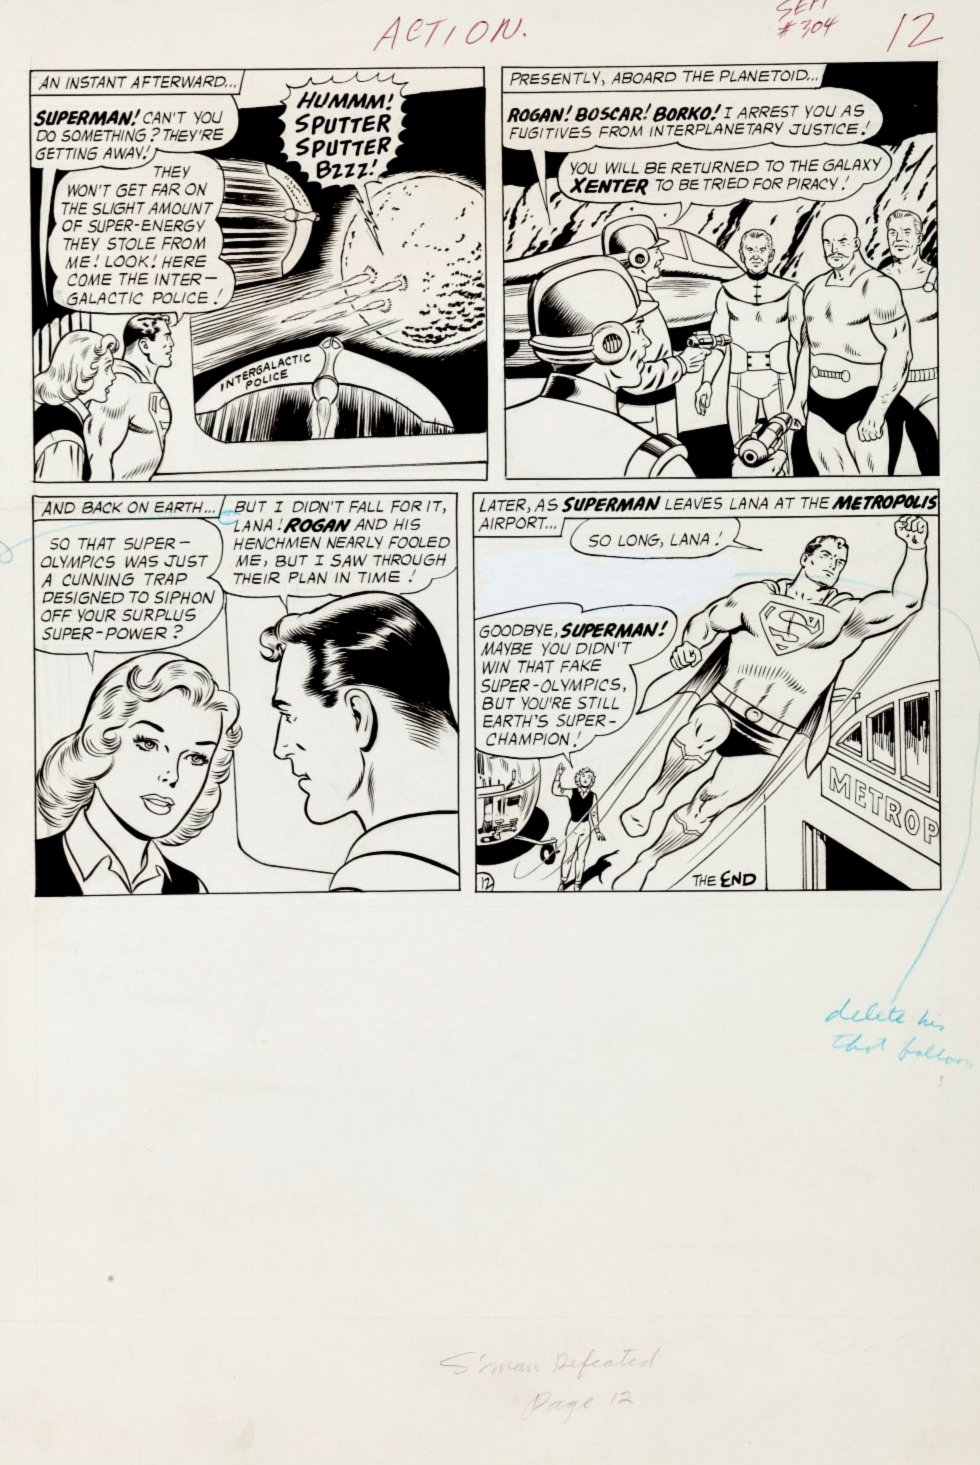 Action Comics #304 p 12 (SUPERMAN IN 3 OF 4 GREAT PANELS! Large Art - 1963